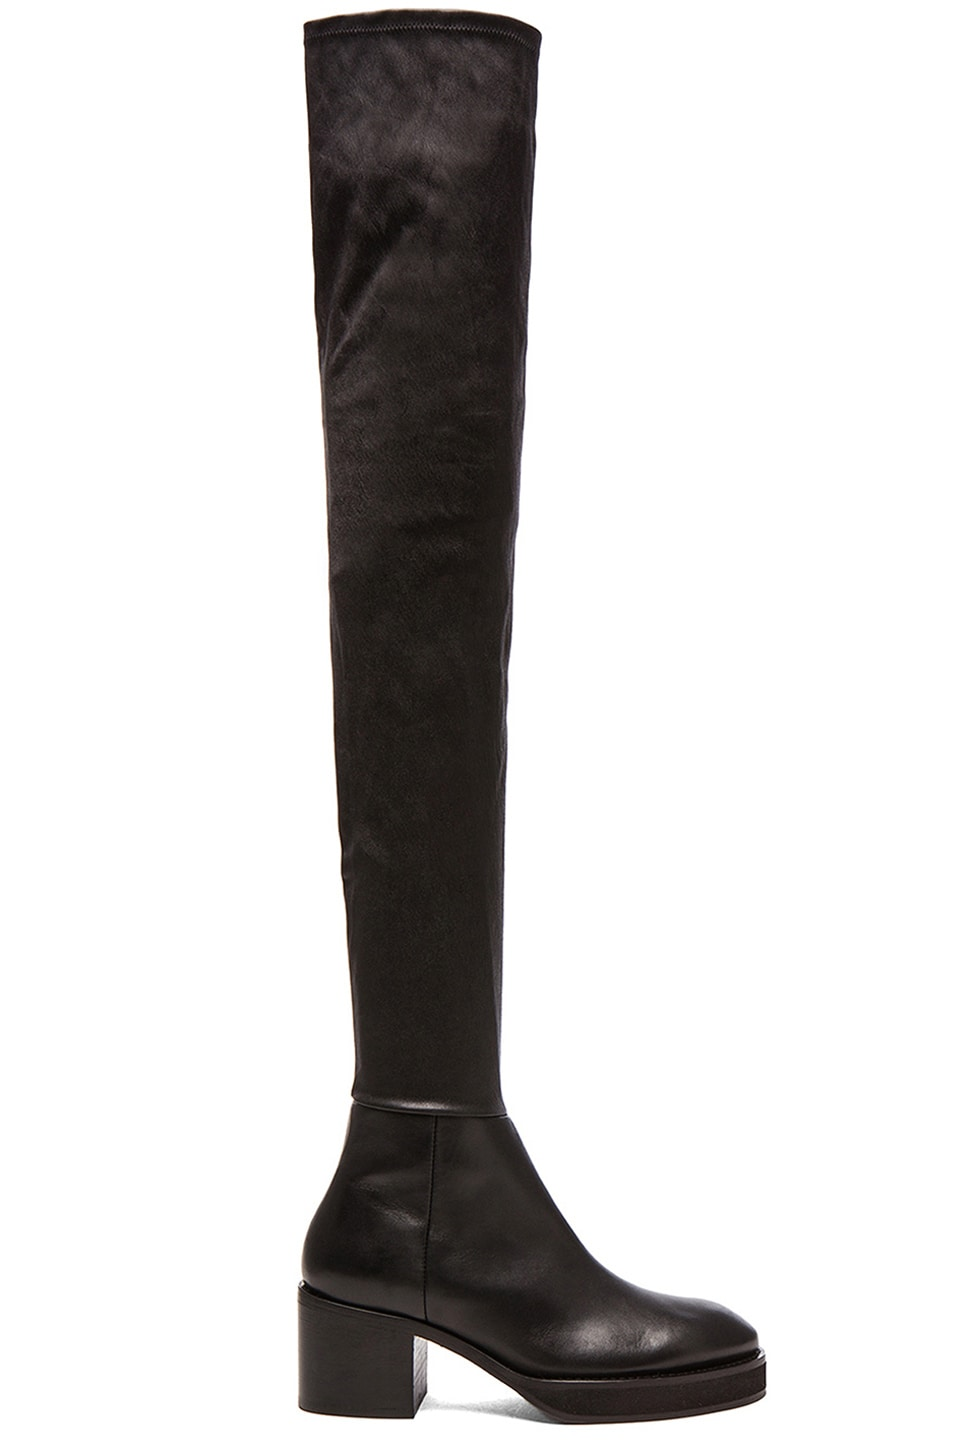 Image 1 of Acne Studios Hiloh Thigh High Leather Boots in Black